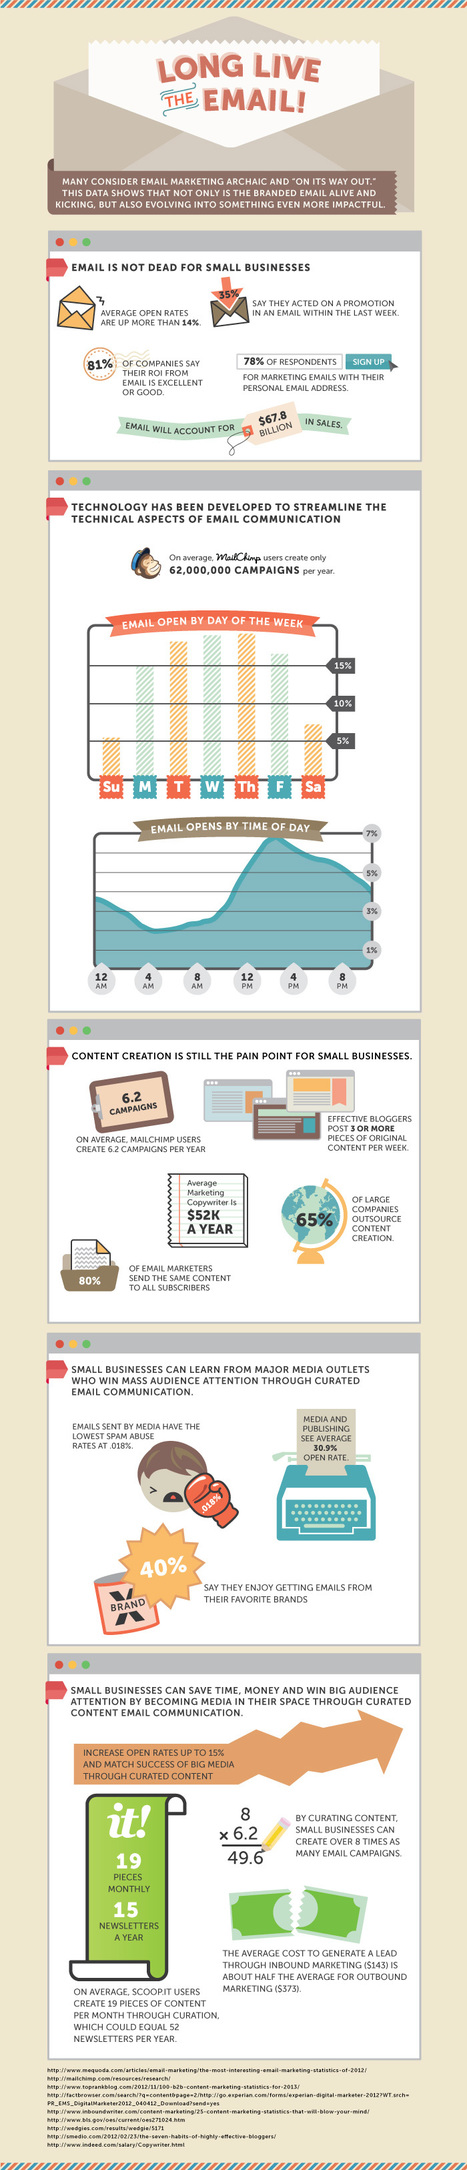 Why Email Is Still Alive [Infographic] - SocialTimes | All-in-One Social Media News | Scoop.it